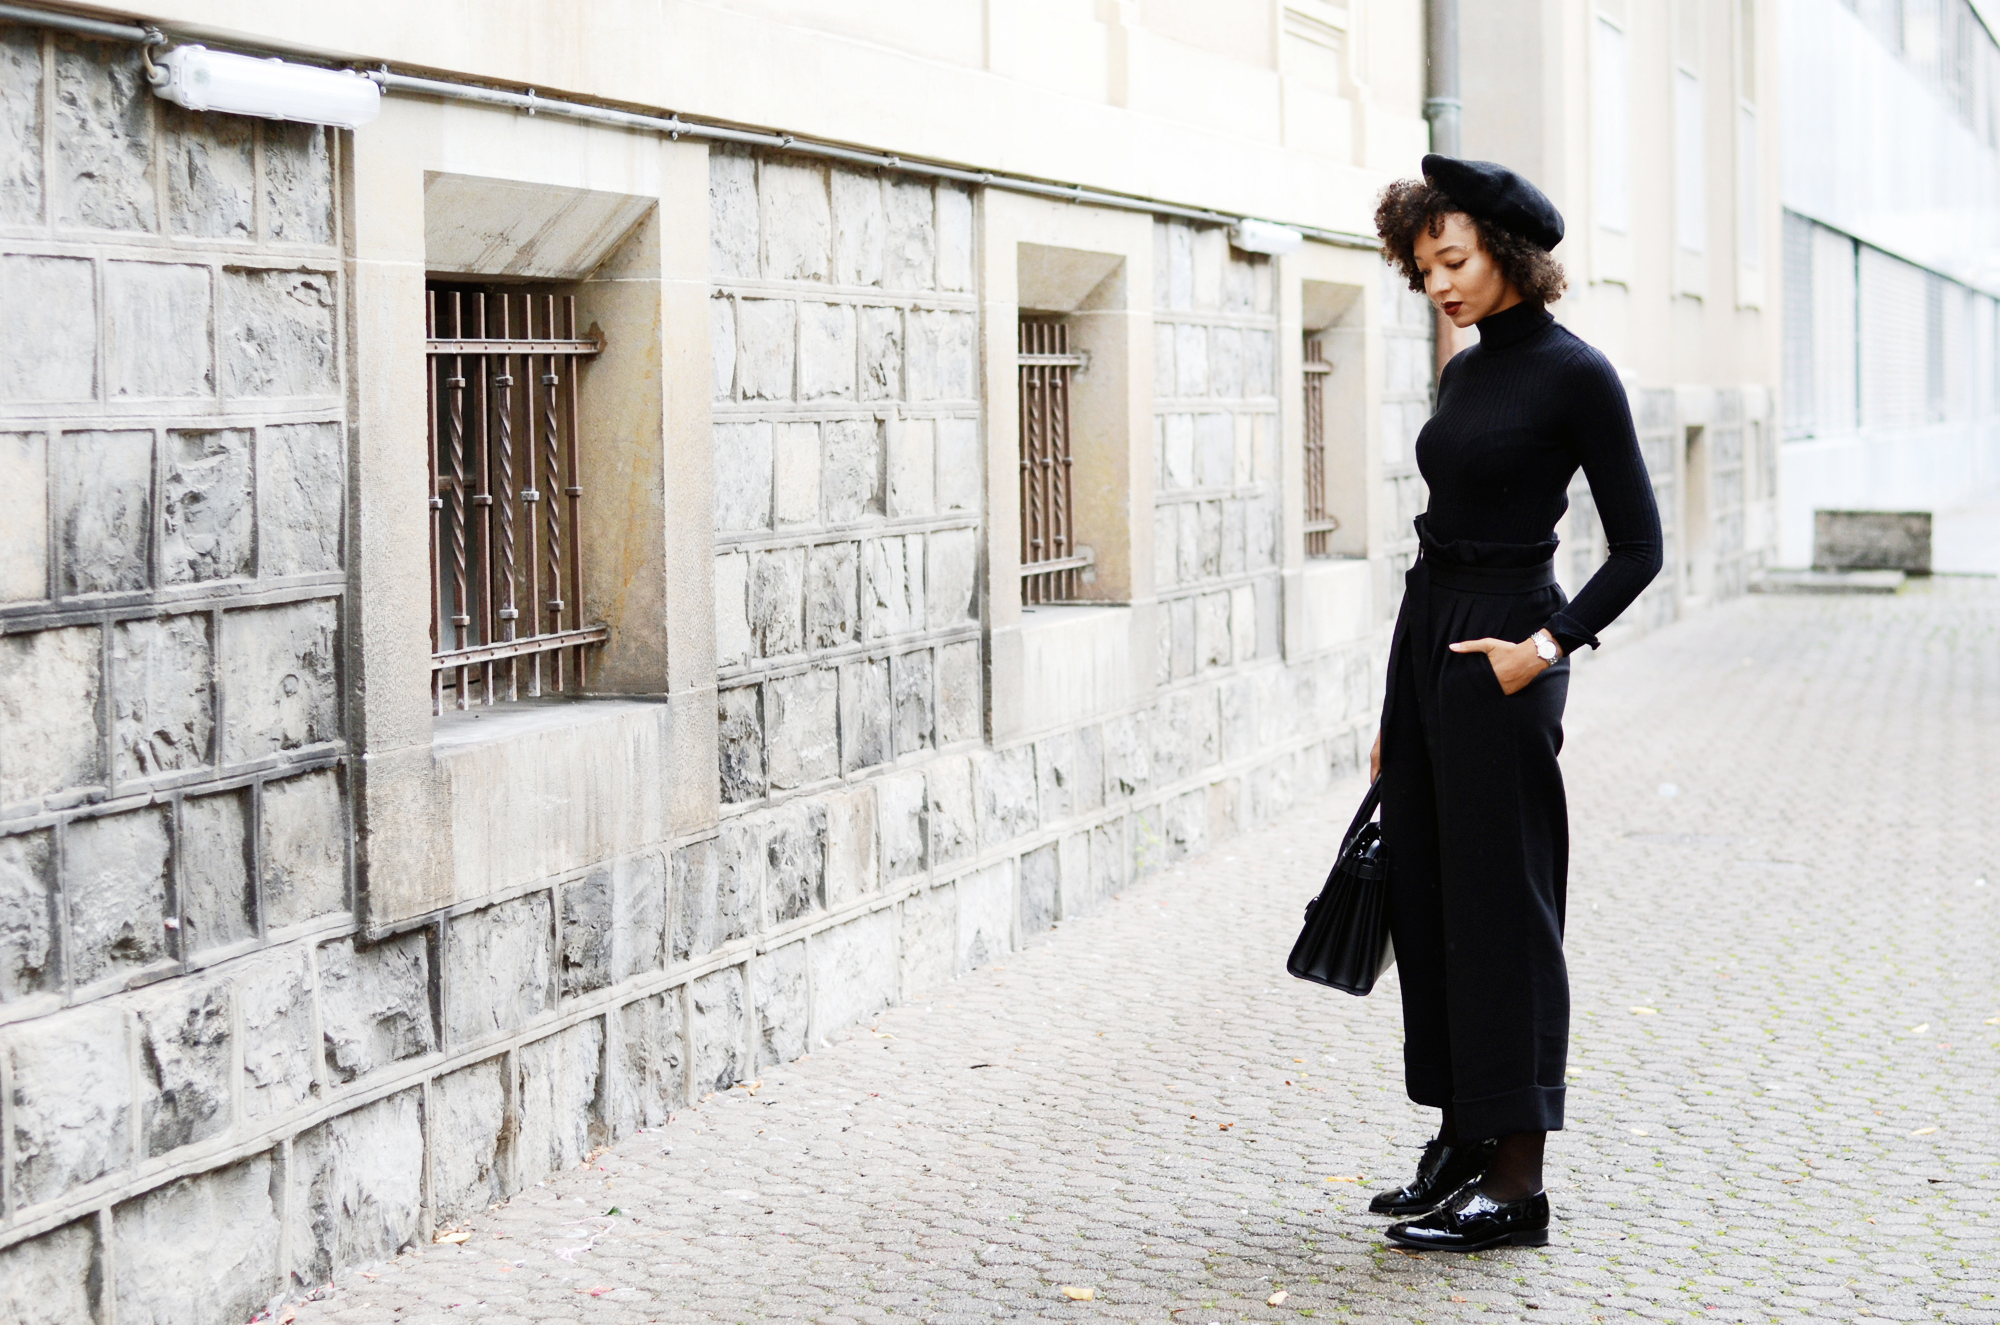 mercredie-blog-mode-geneve-suisse-fashion-blogger-all-black-outfit-chic-saint-laurent-sac-de-jour-black-matte-derbies-vernies-shoepassion-102-afro-beret-parisian-look